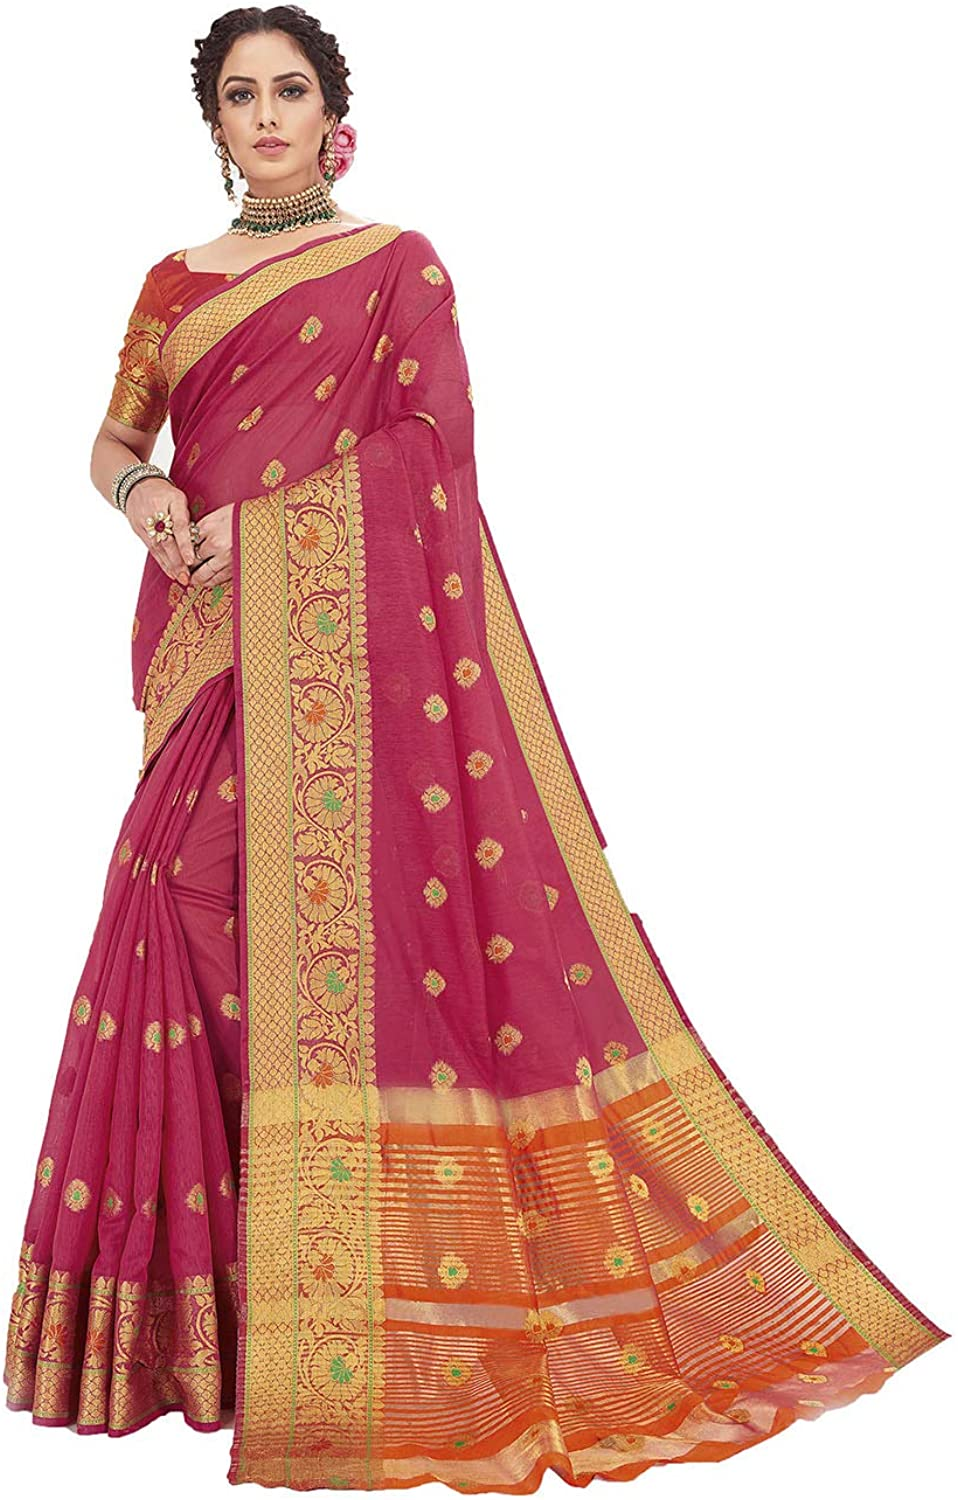 Saree for Women Bollywood Wedding Designer Pink Sari with Unstitched Blouse.